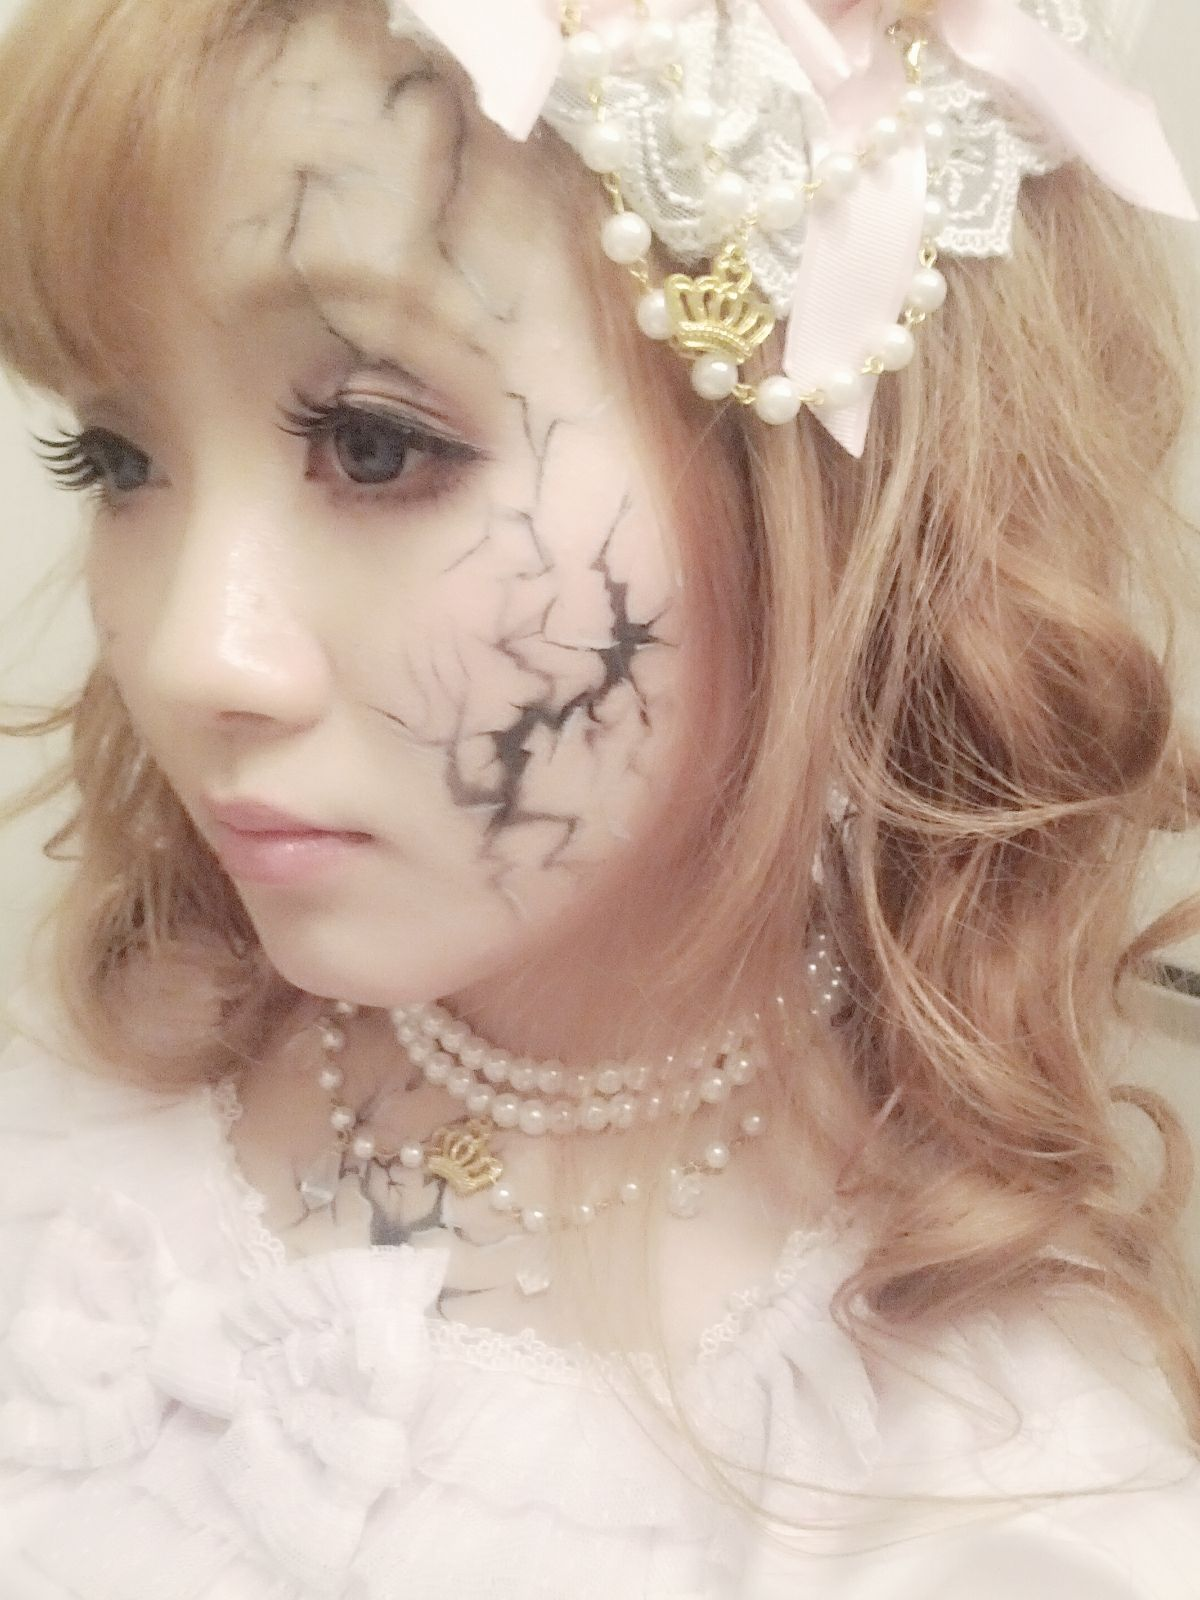 Cracked porcelain doll Broken doll makeup, Doll makeup